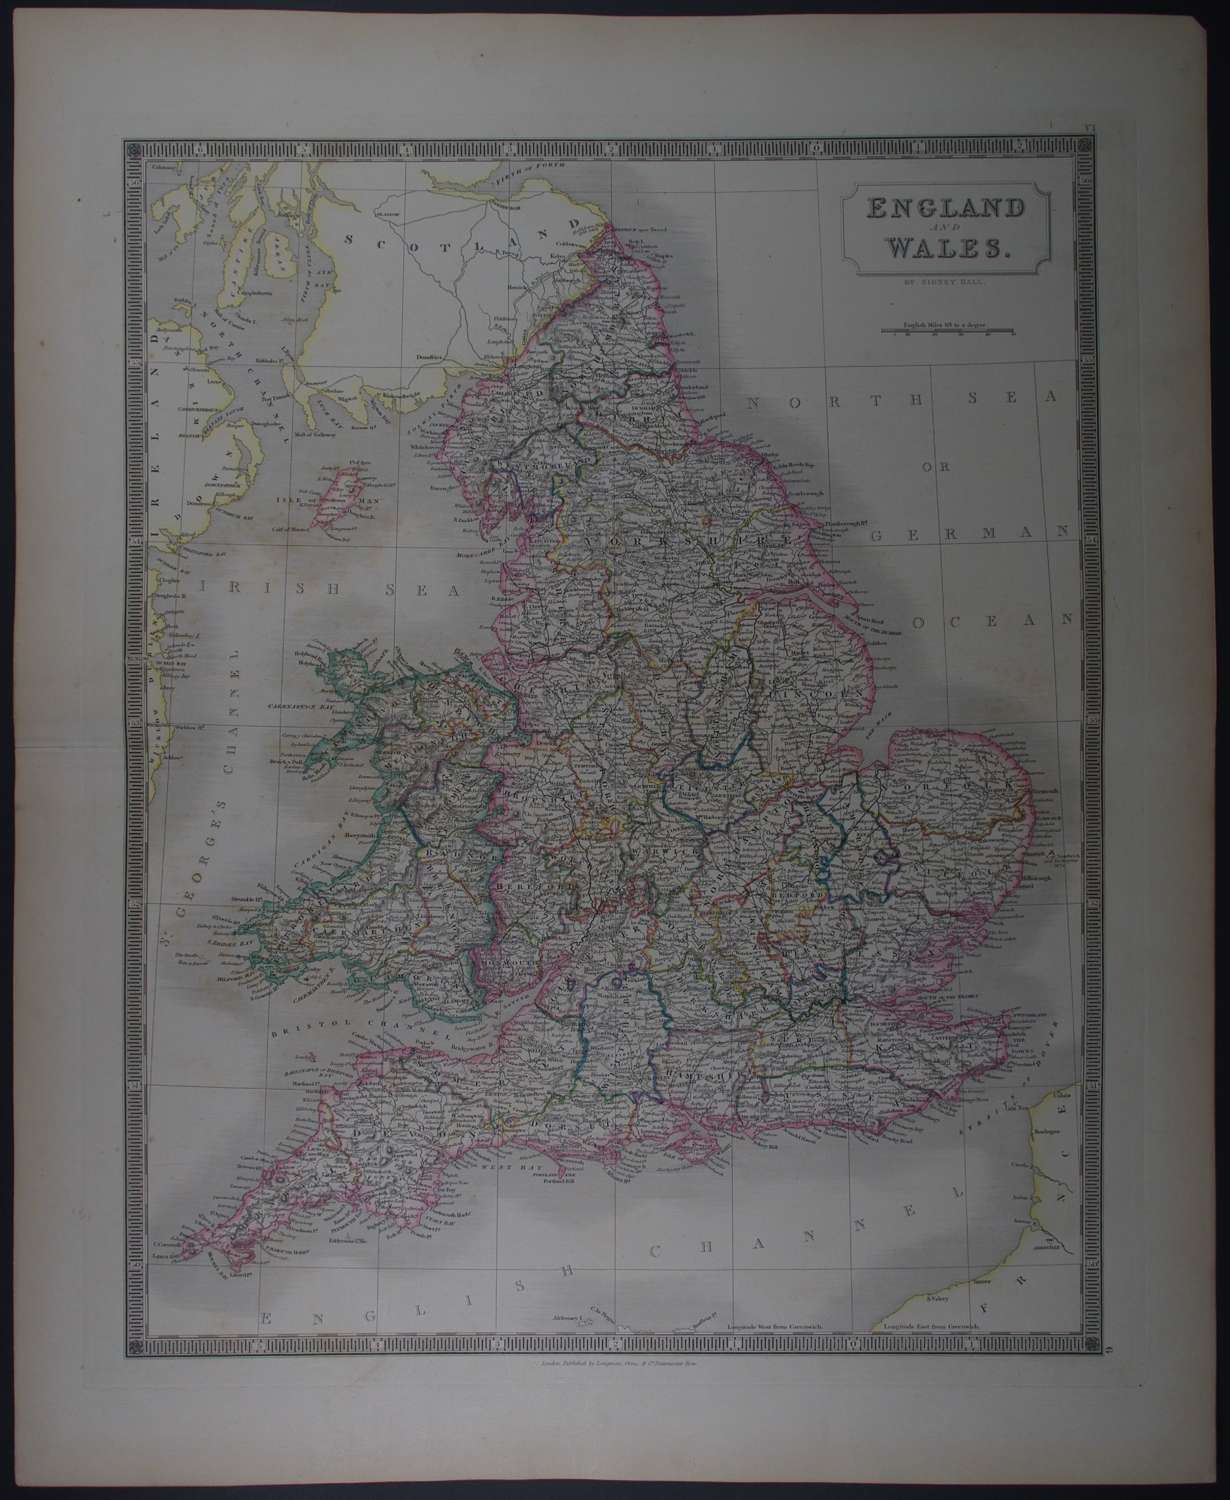 England and Wales by Sidney Hall